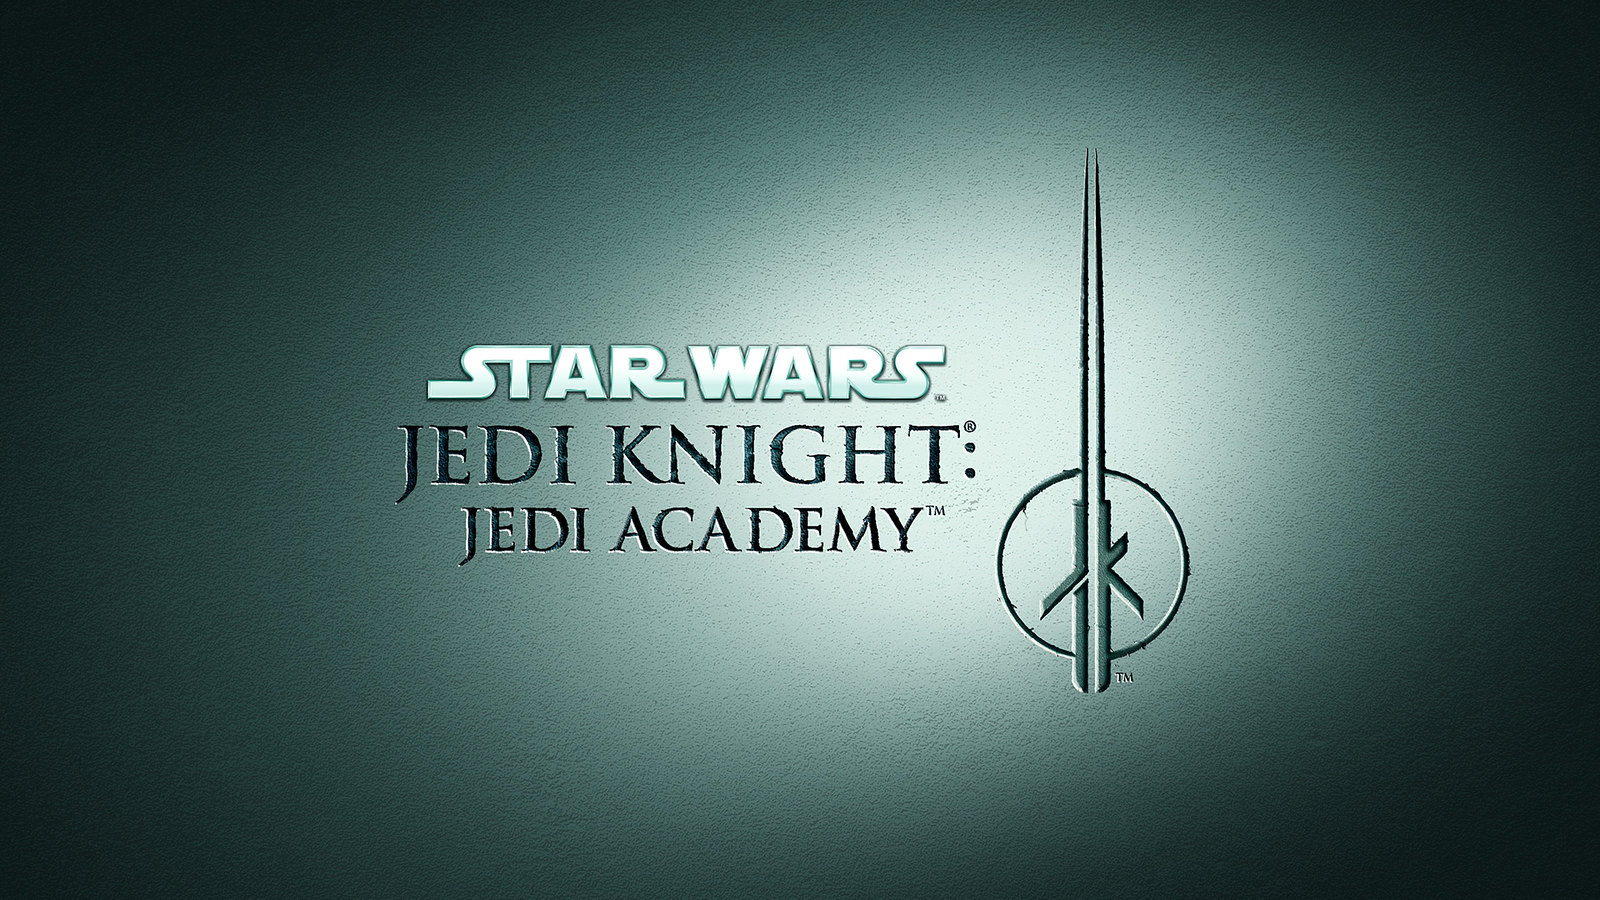 Star Wars Jedi Knight Jedi Academy Out Now On Ps4 And Switch